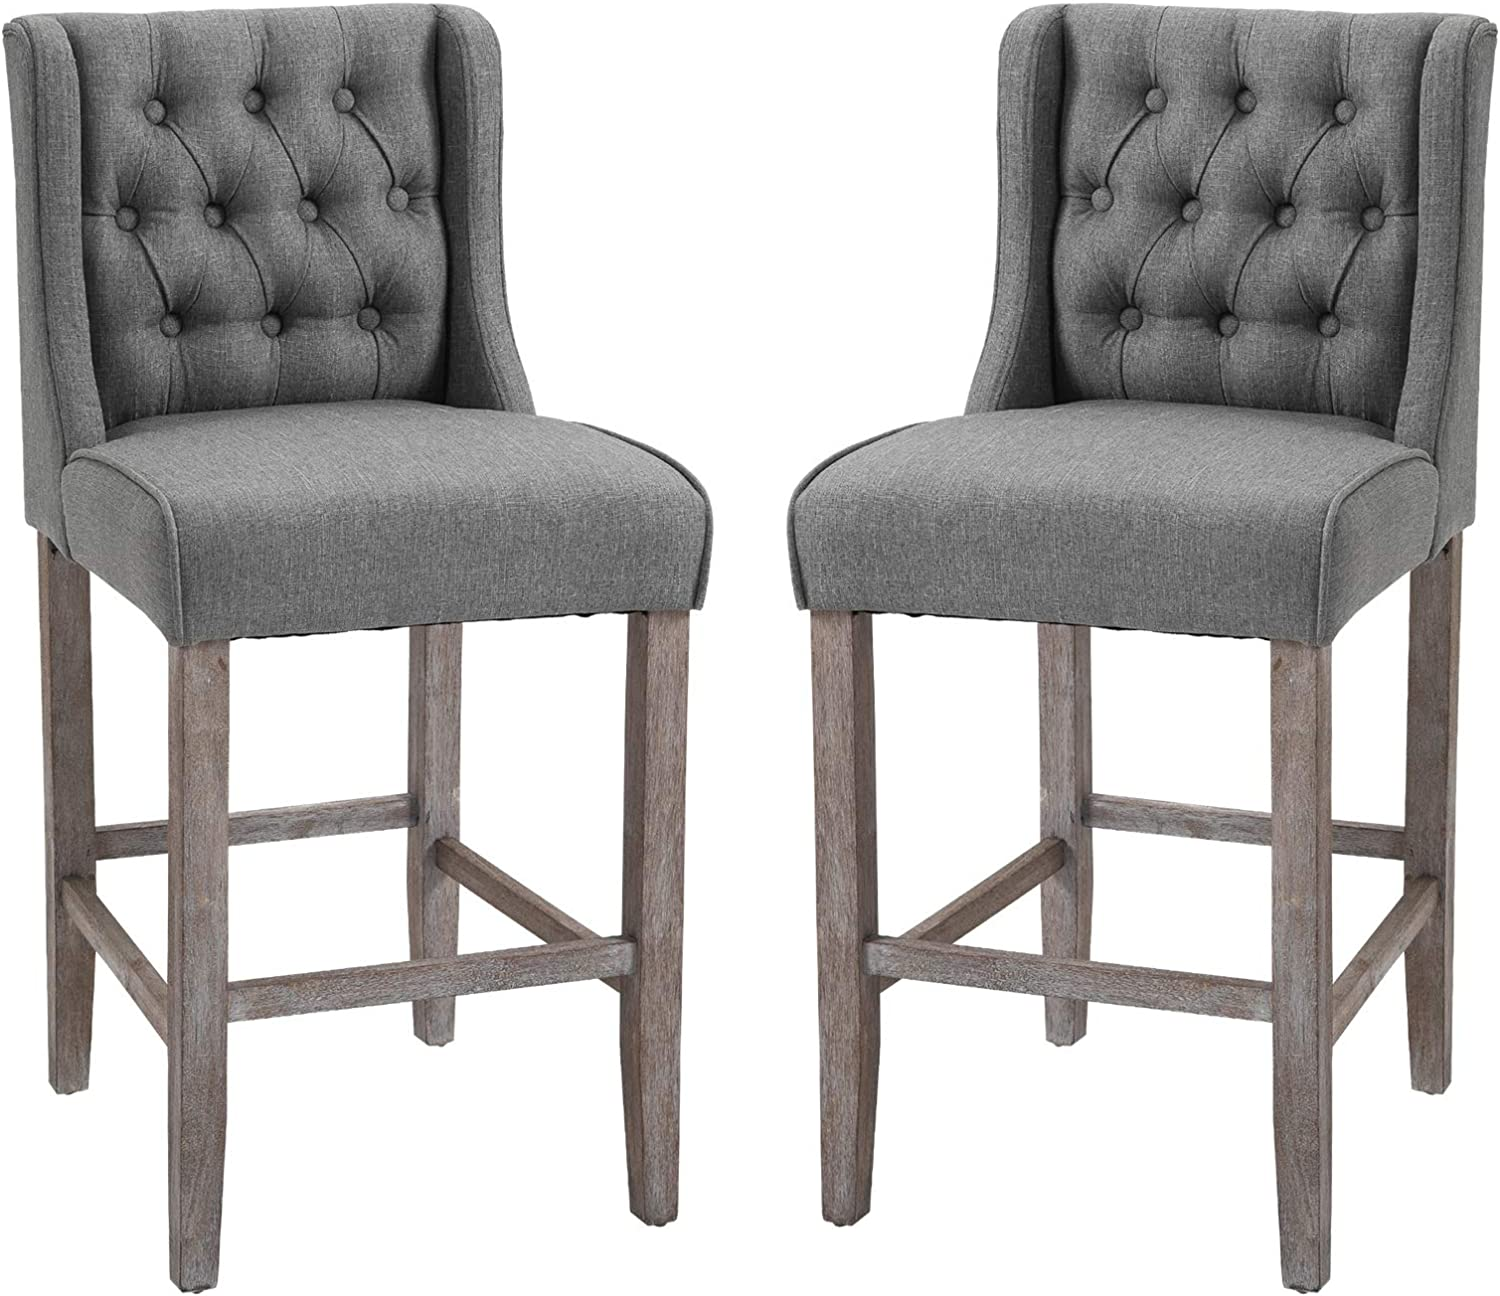 Amazon Com Homcom 40 Tufted Wingback Counter Height Armless Bar Stool Dining Chair Set Of 2 Grey Home Kitchen